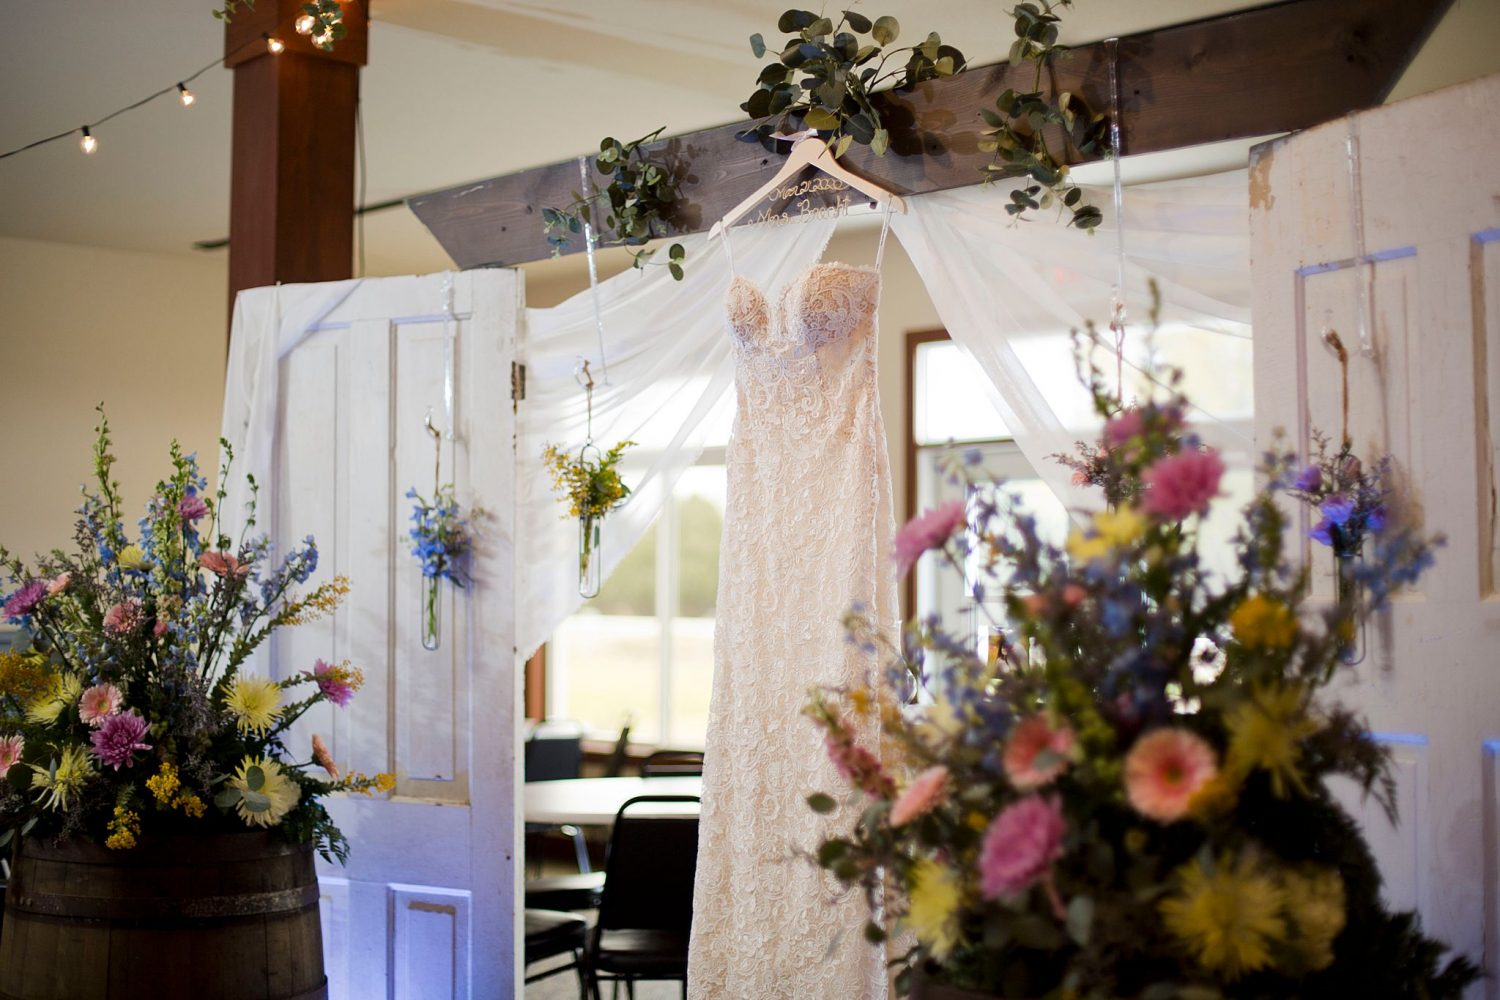 Interior of Lake Macbride golf course decorated for a wedding ceremony with the bridal gown hanging up by the altar.